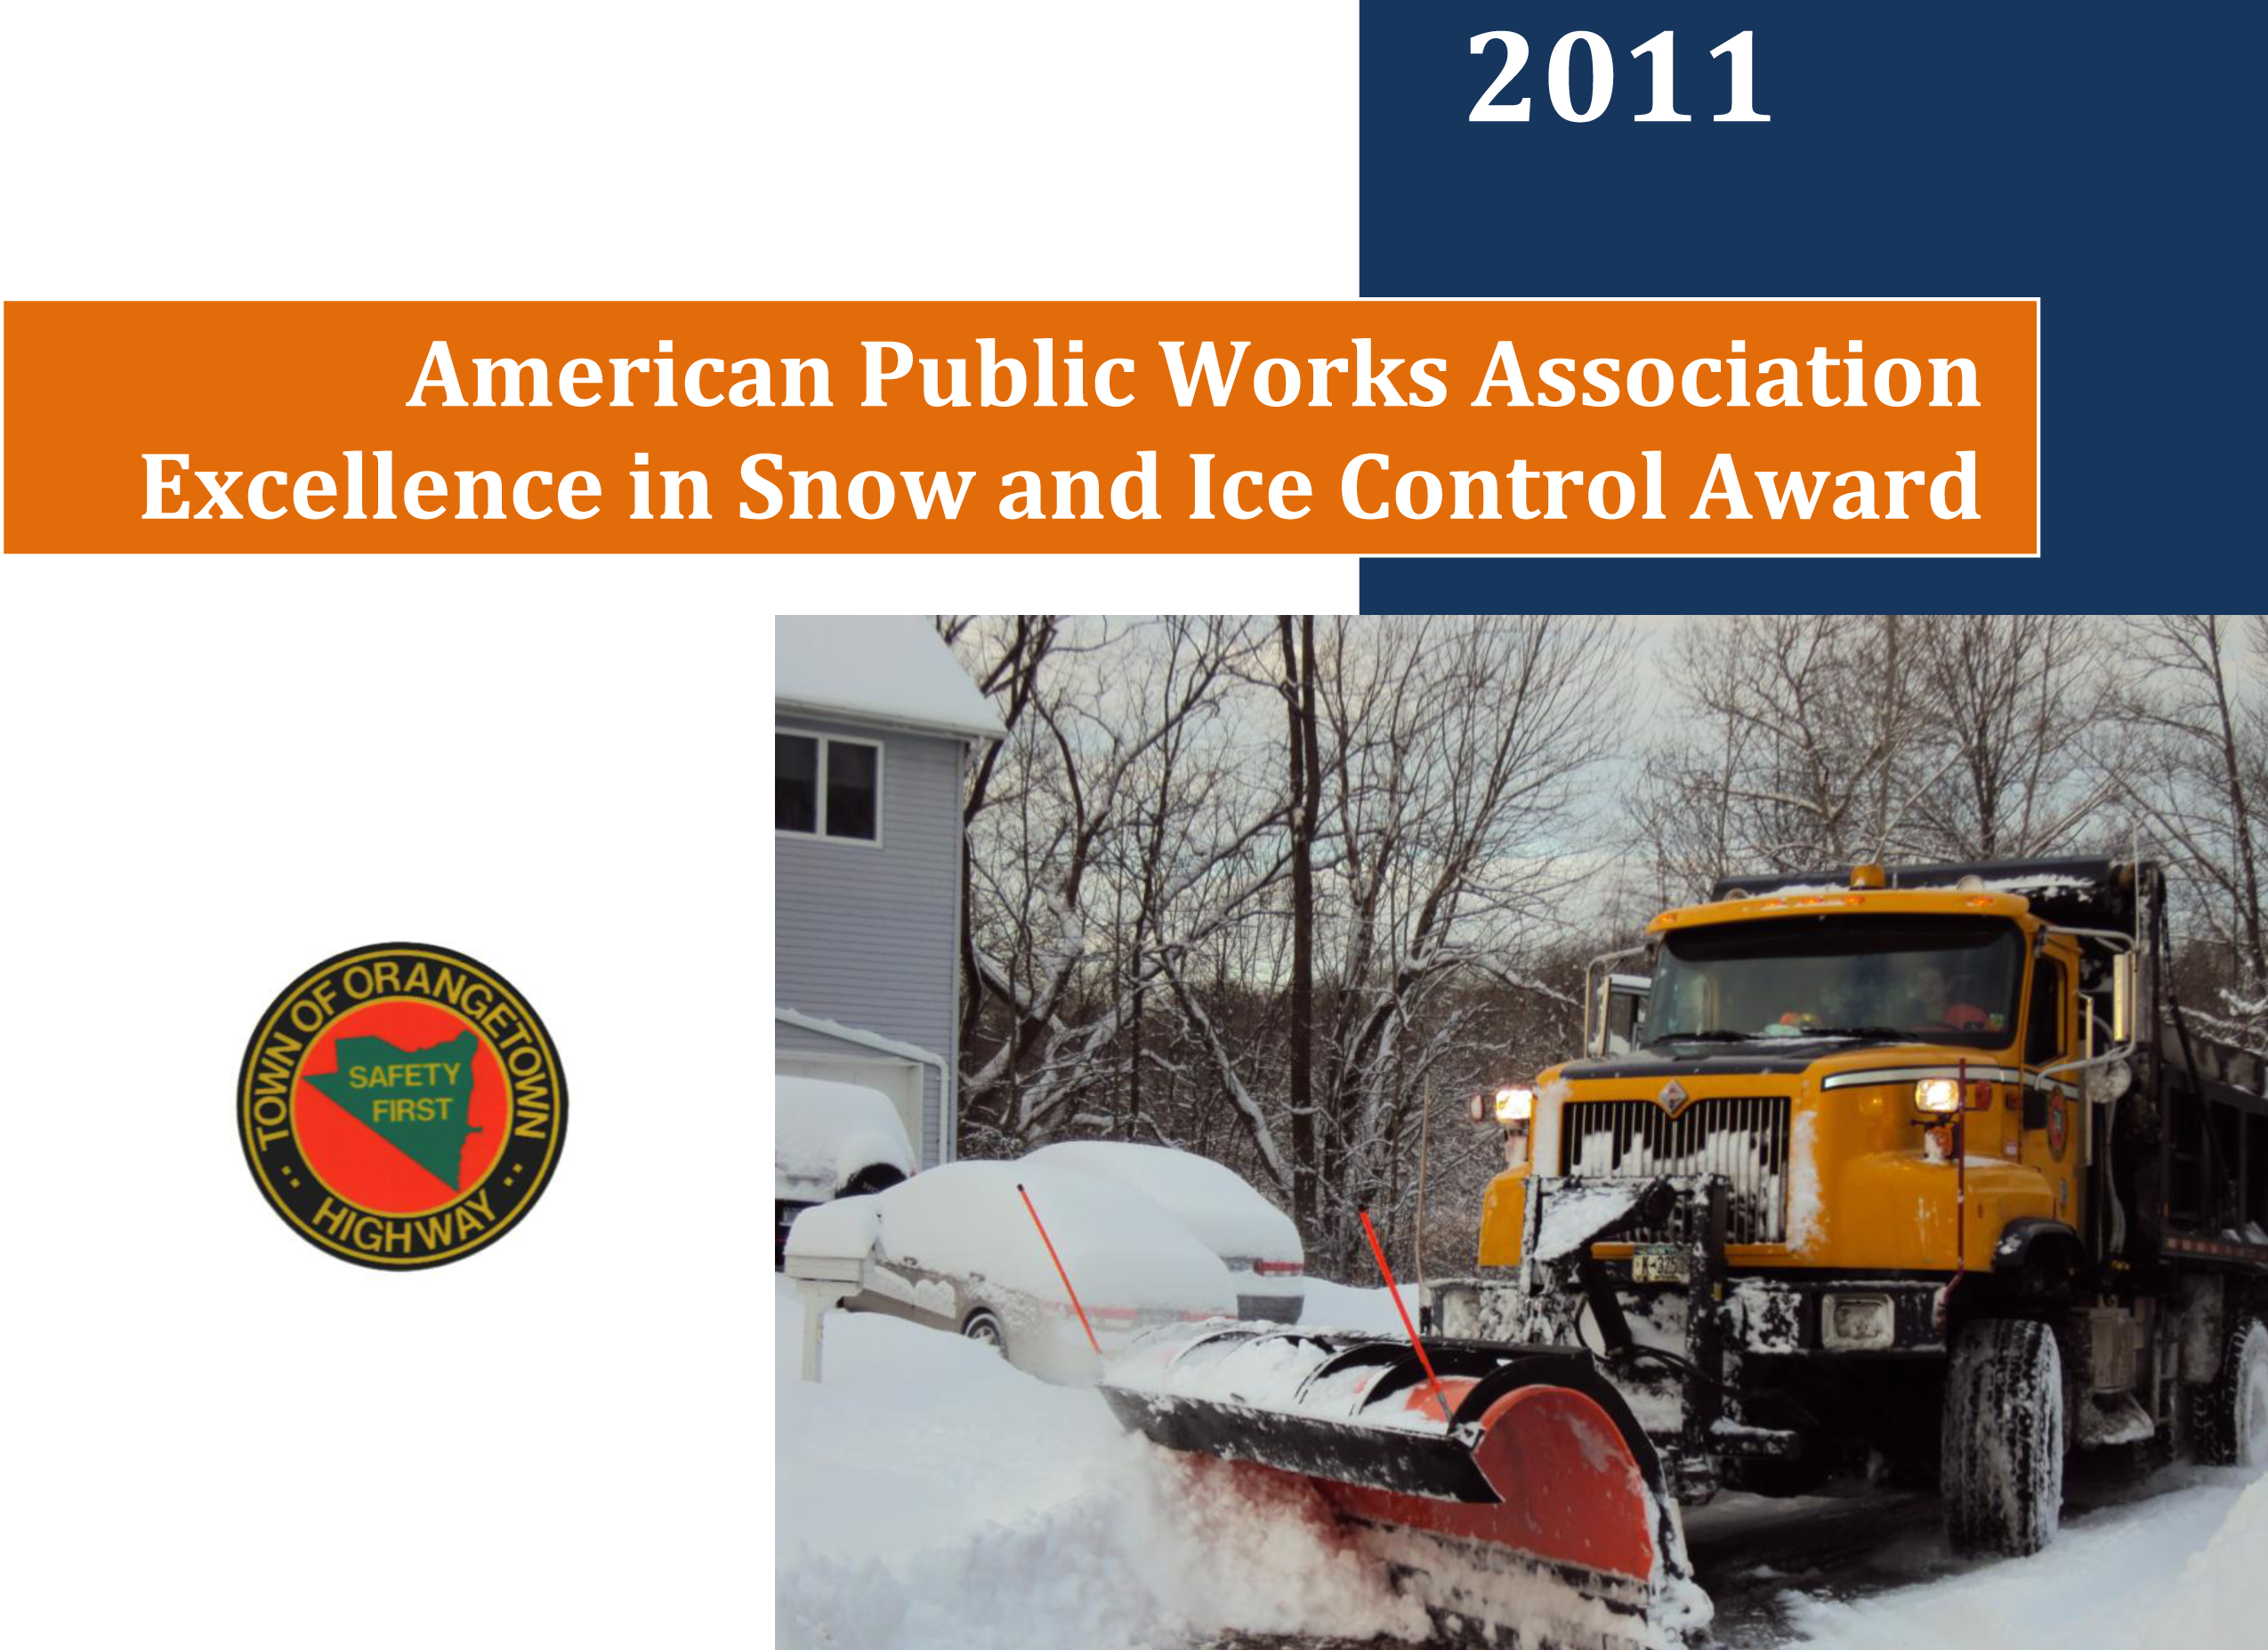 Orangetown Highway Department